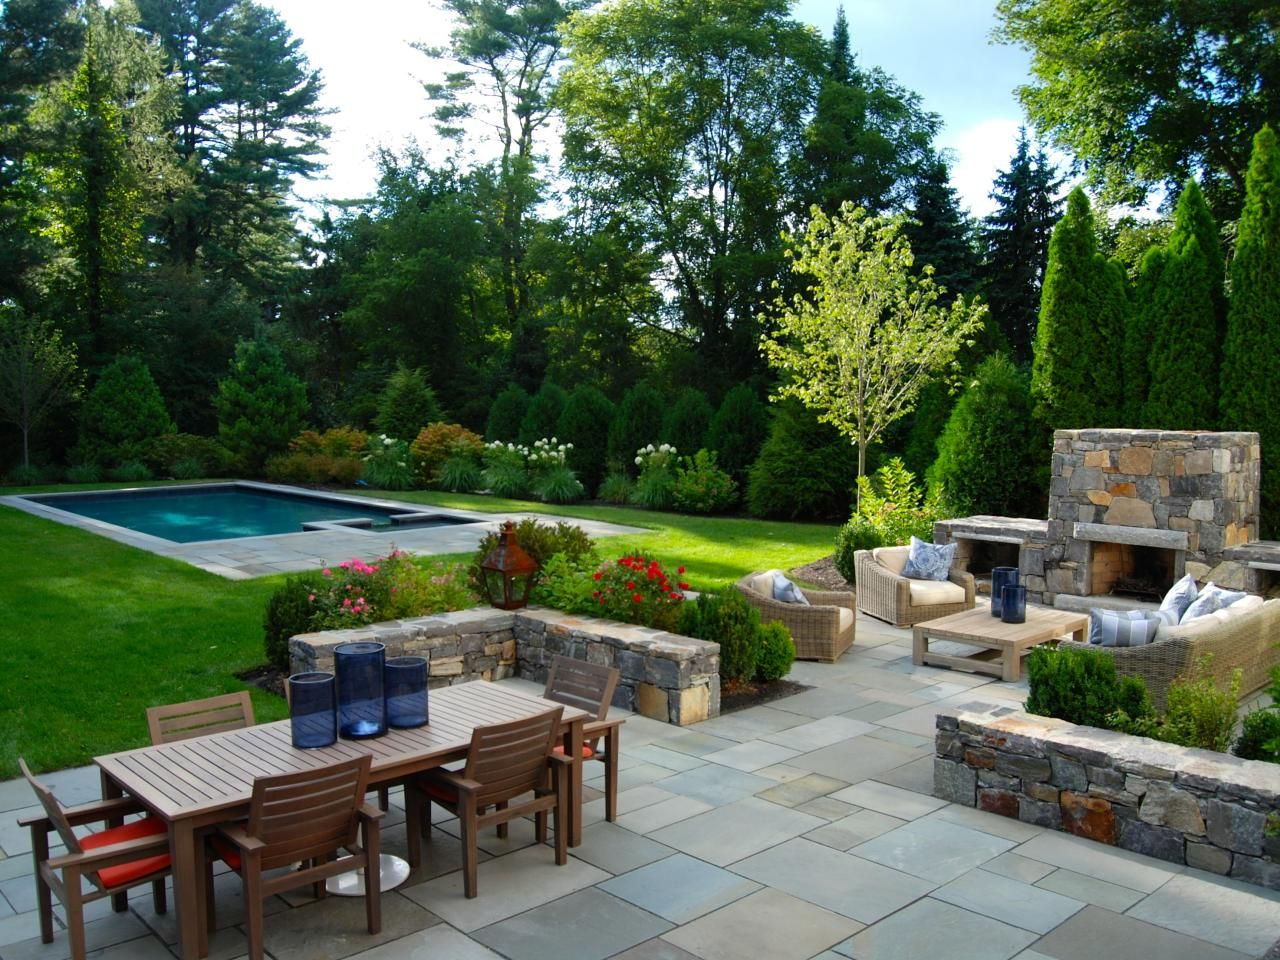 20 Wow Worthy Hardscaping Ideas | Landscaping Ideas And Hardscape Design |  HGTV